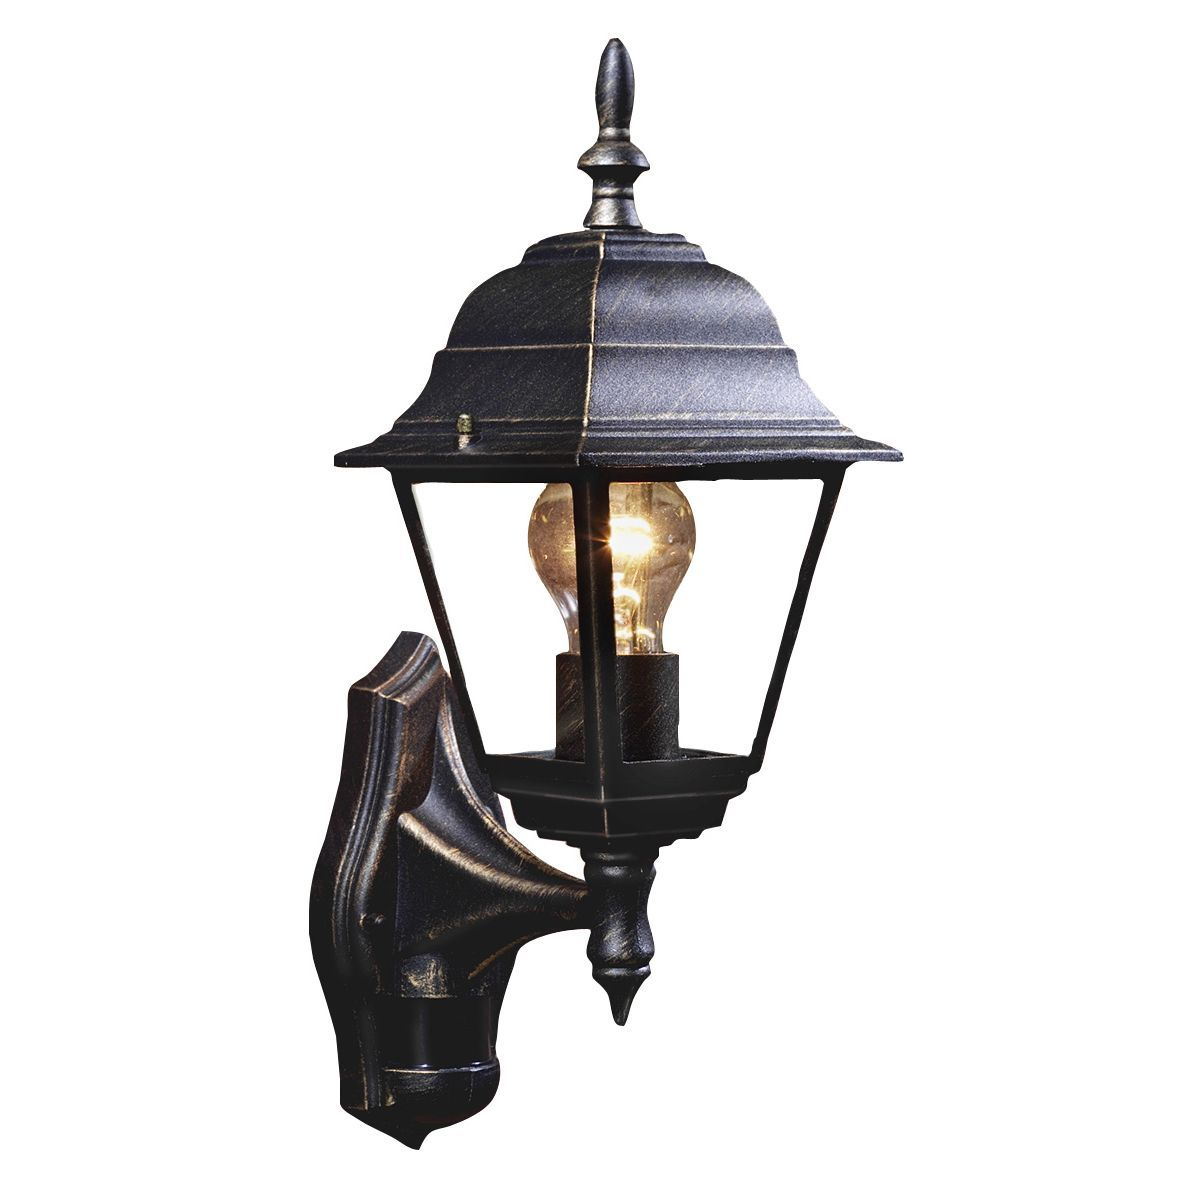 Bq polperro antique effect black 60w mains powered external pir bq polperro antique effect black 60w mains powered external pir lantern aloadofball